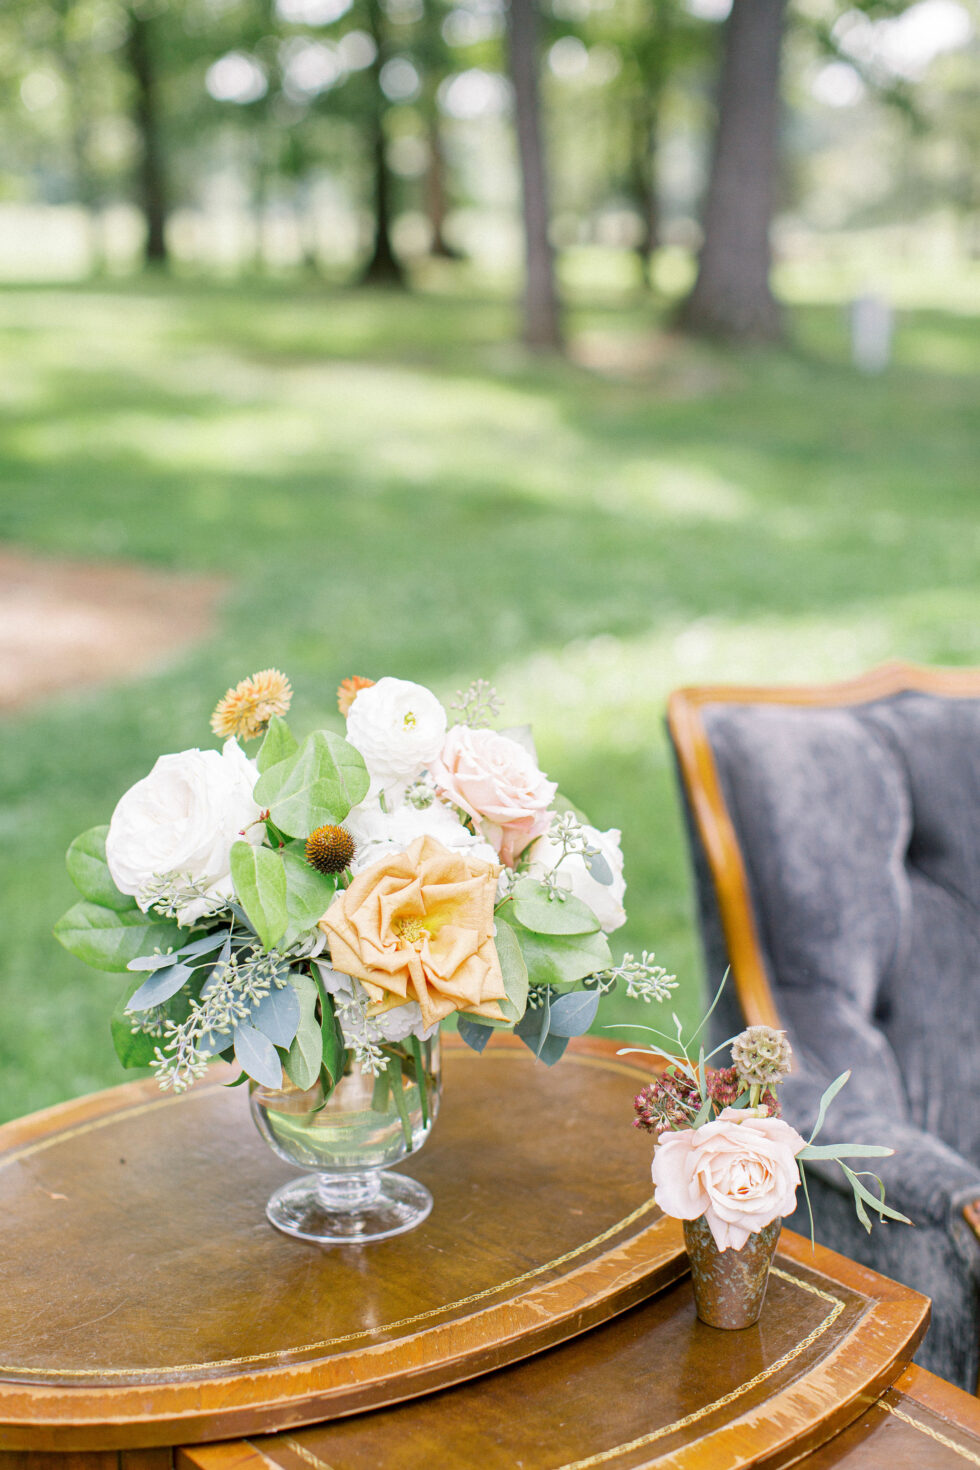 The-Prettiest-Pieces-Outdoor-Fall-Wedding-Summerfield-Farms04